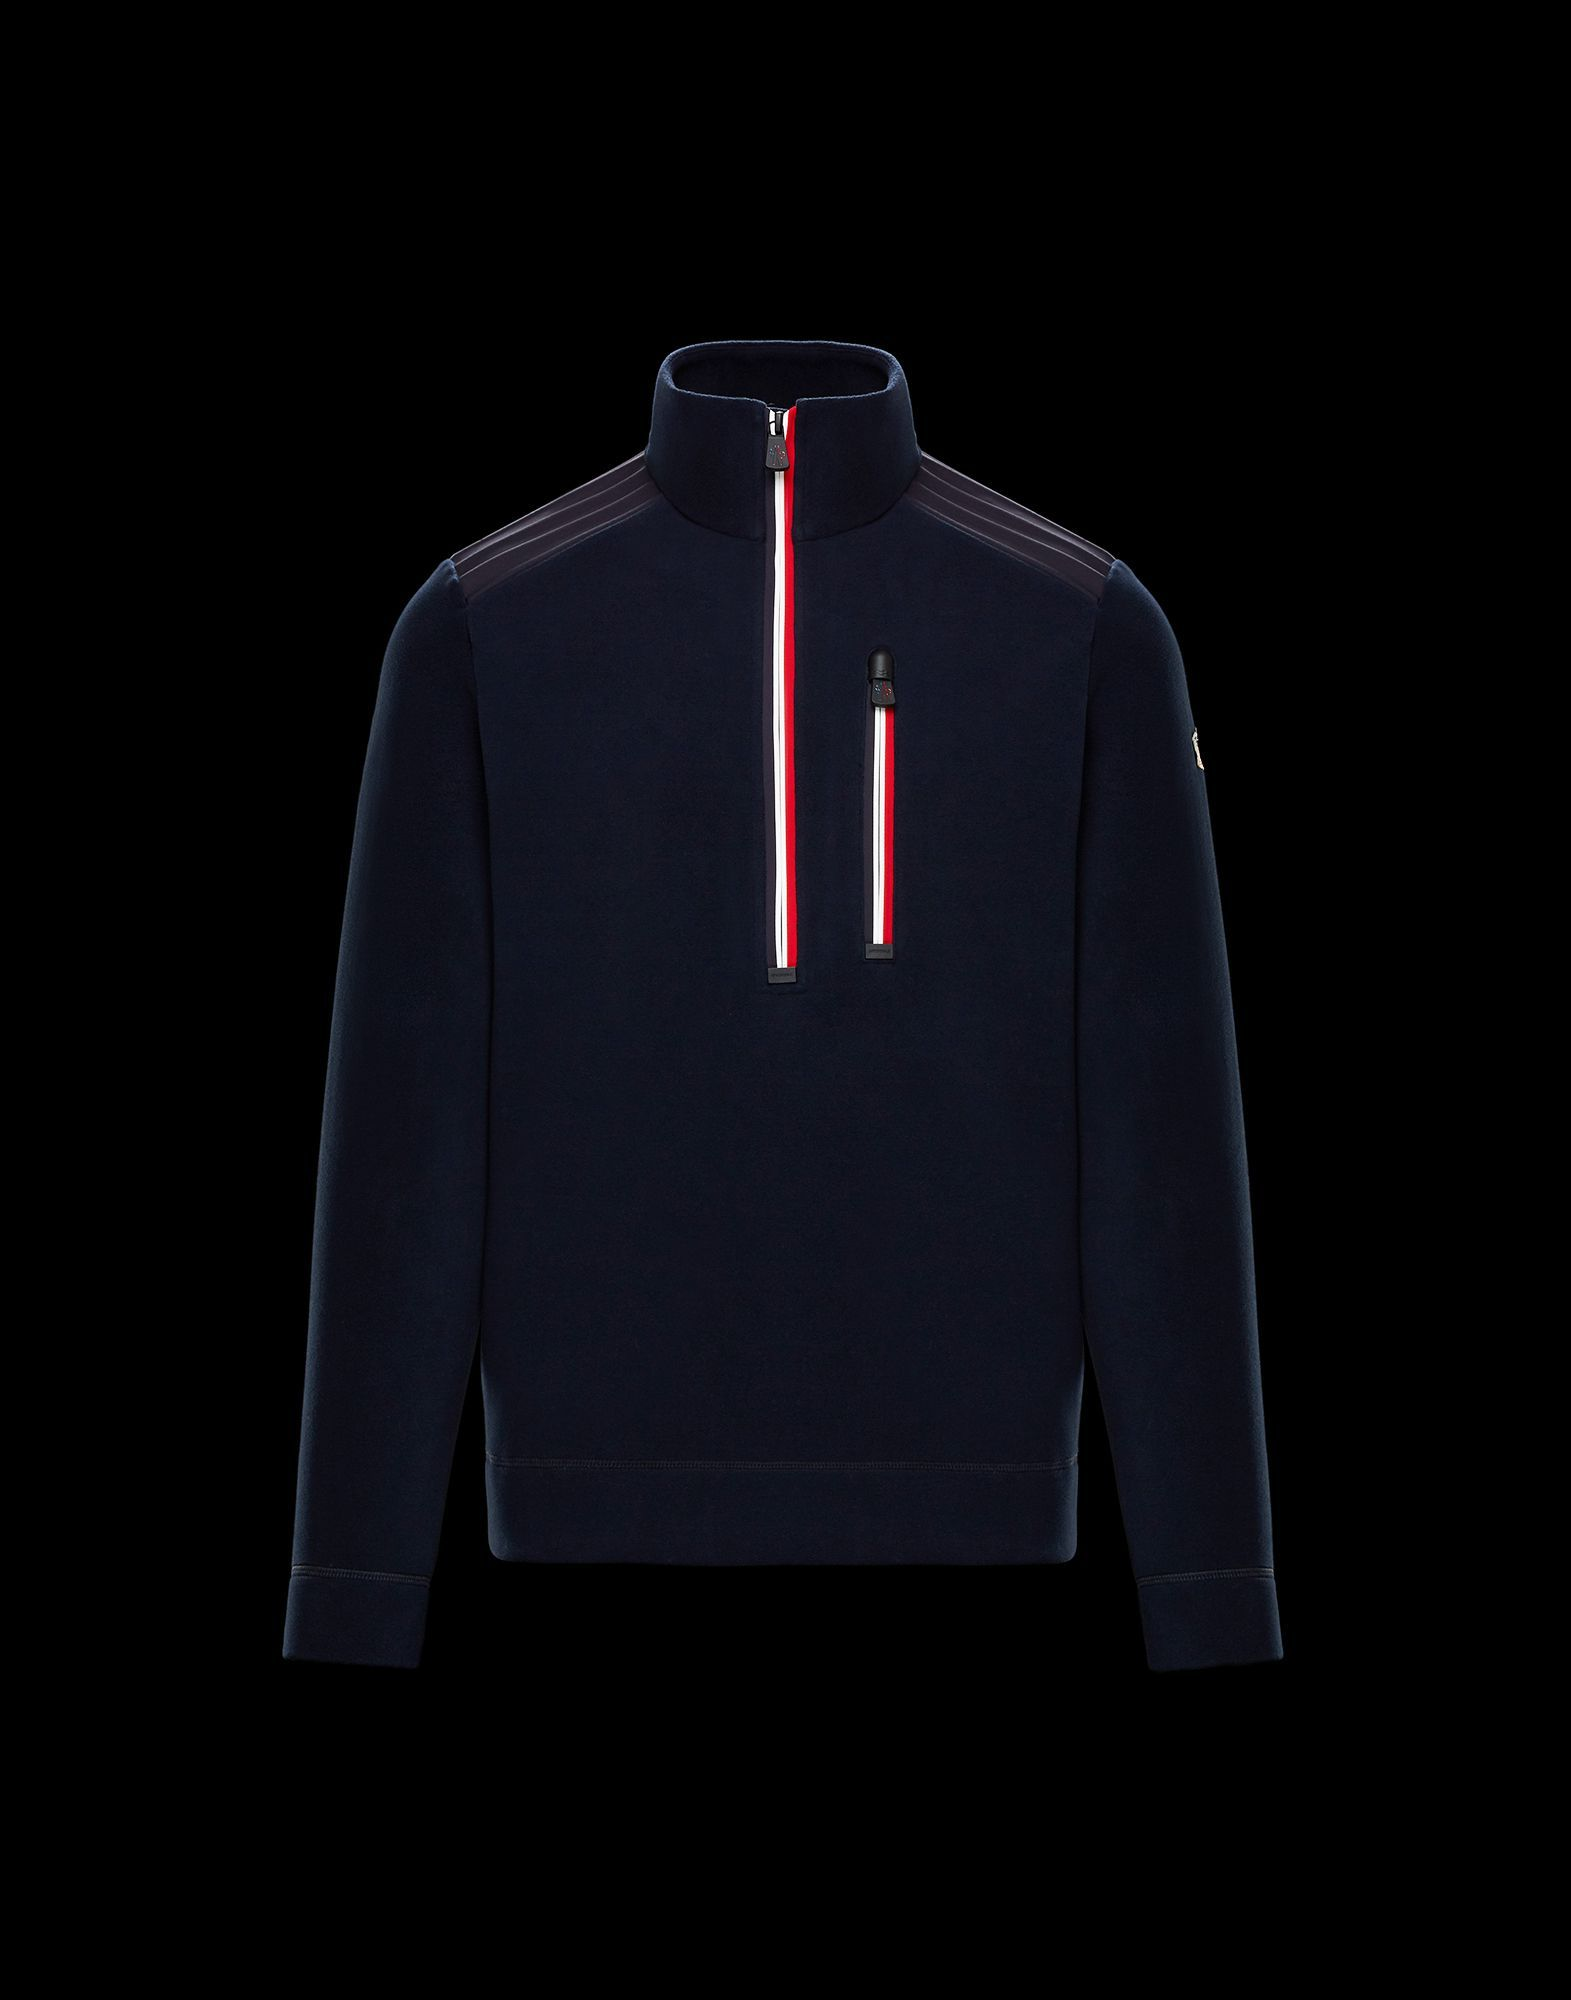 6526fefdd60b Moncler ZIPPED MOCK TURTLENECK for Man, High neck sweaters   Official  Online Store